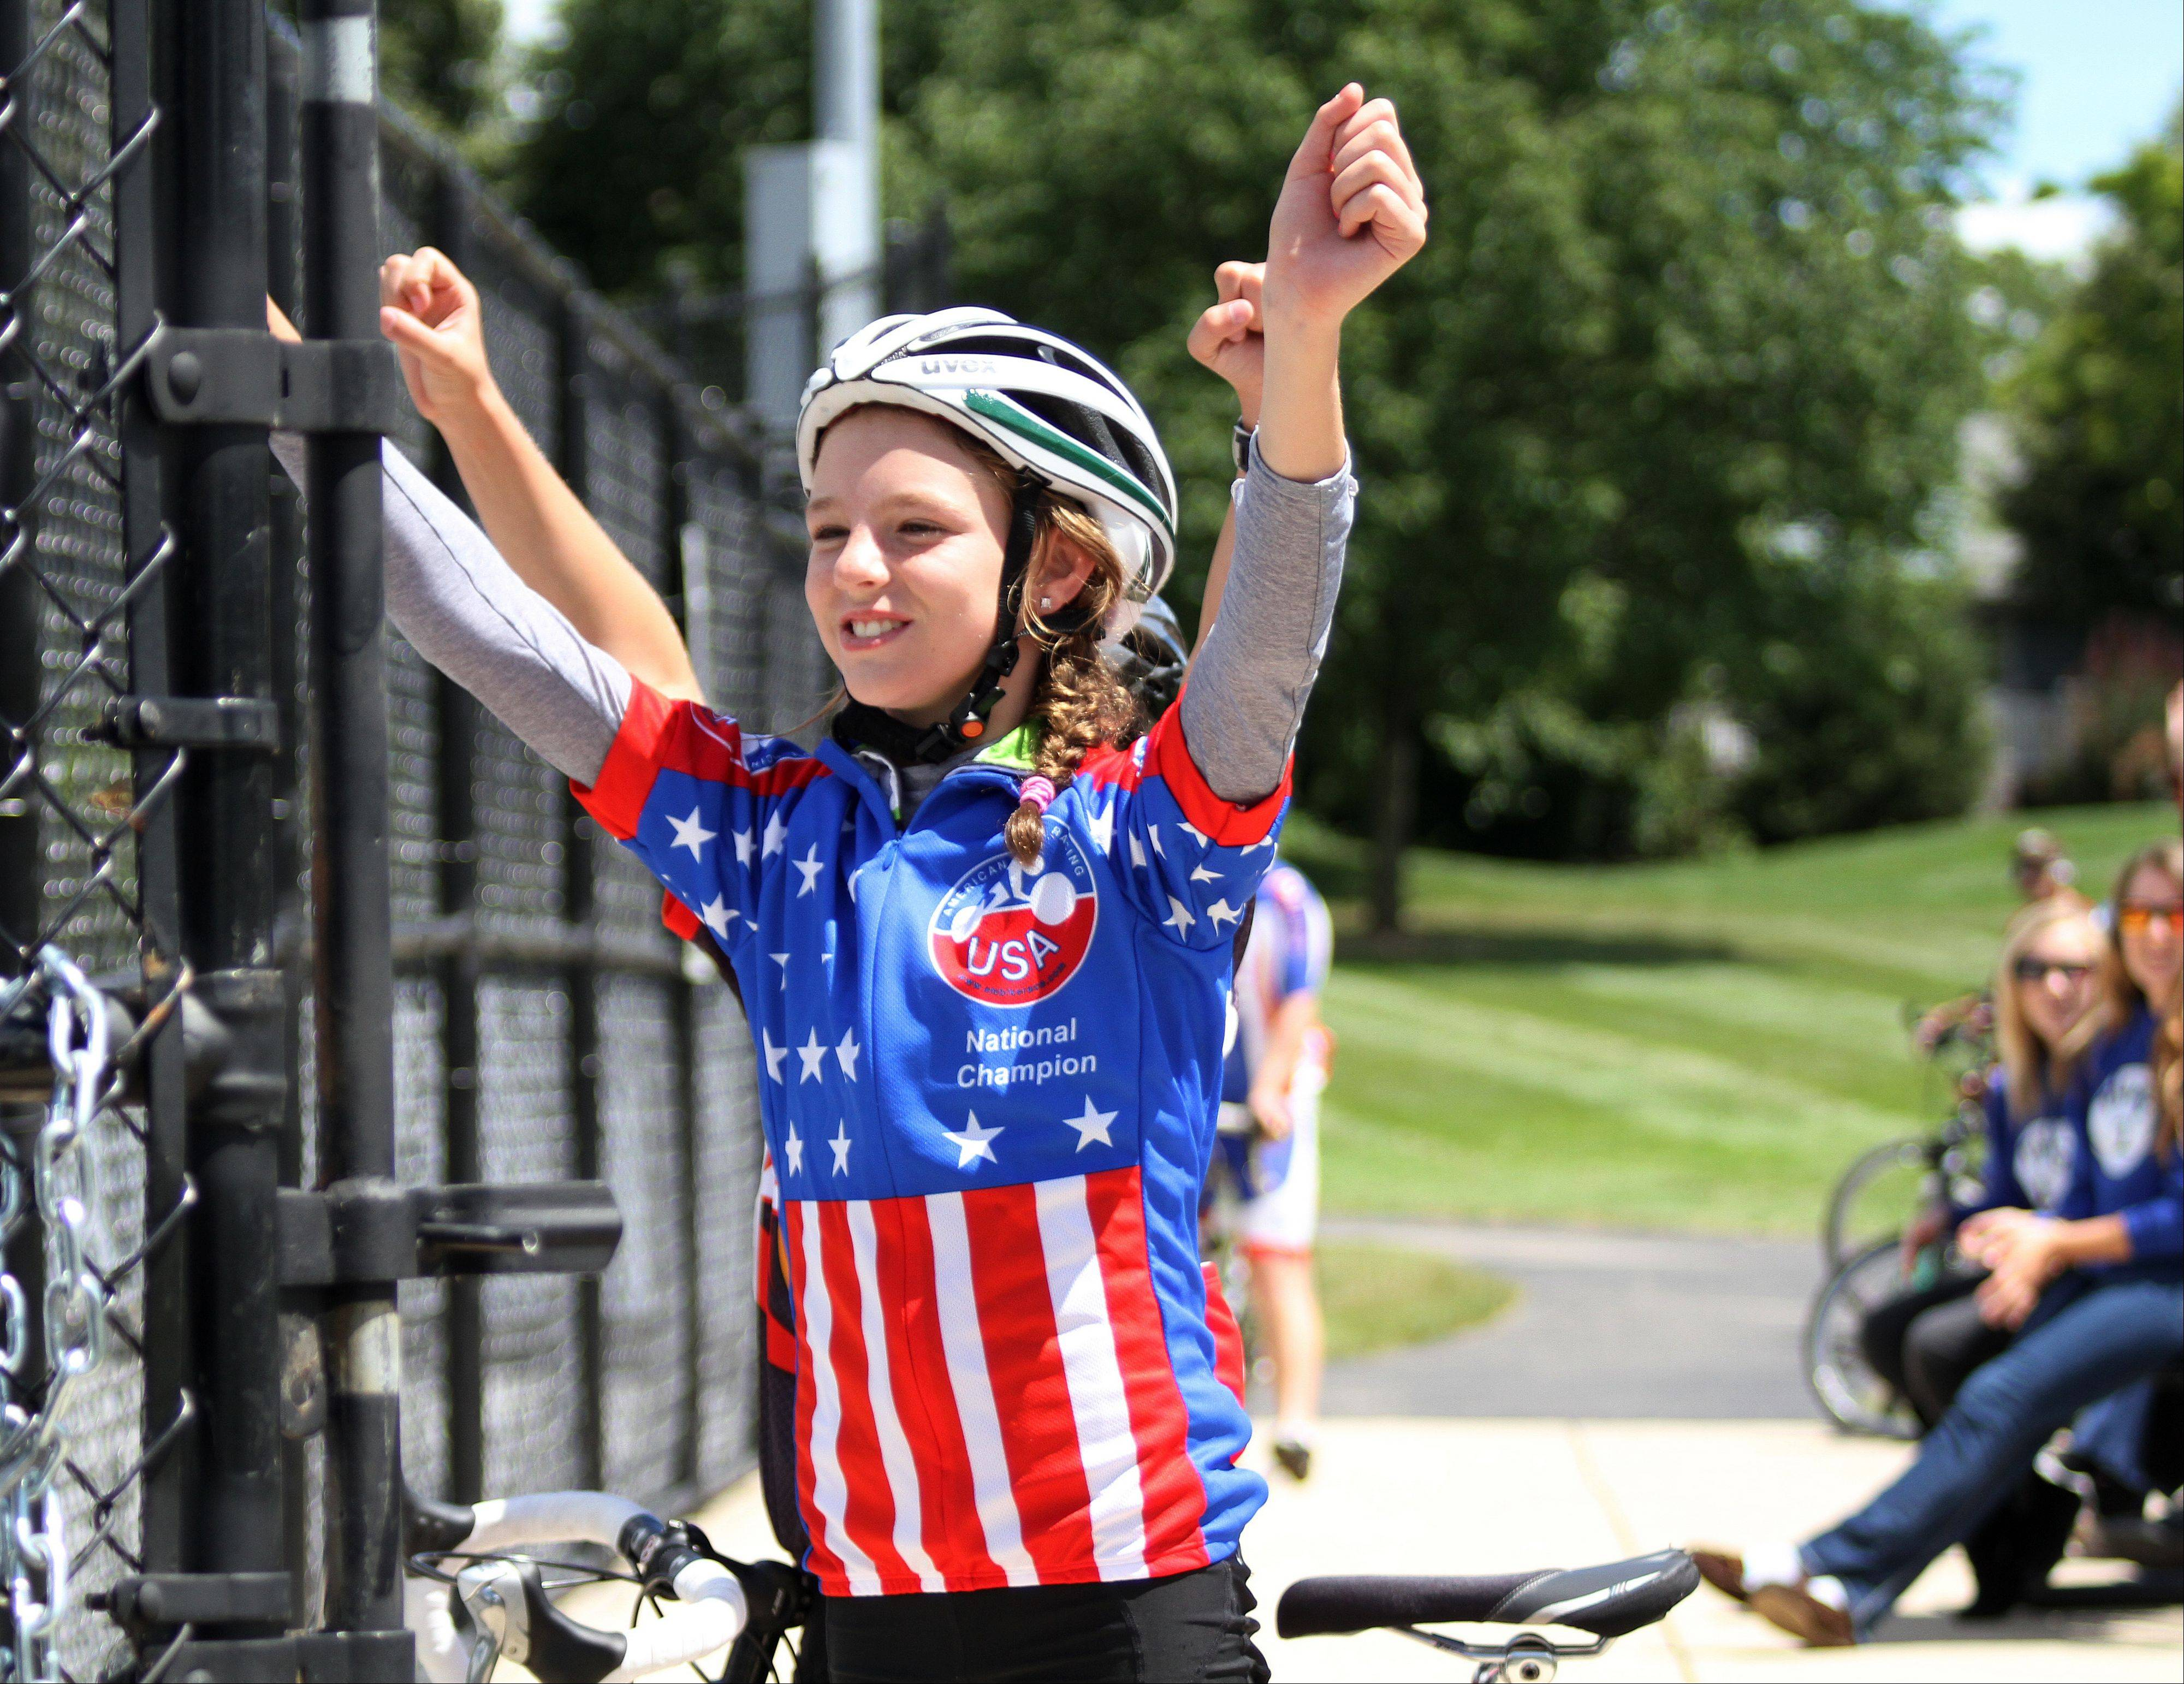 Danielle Krebs of St. Charles, 12, cheers on the BMX riders Sunday at the 2013 Winfield Criterium at Oakwood Park in Winfield.